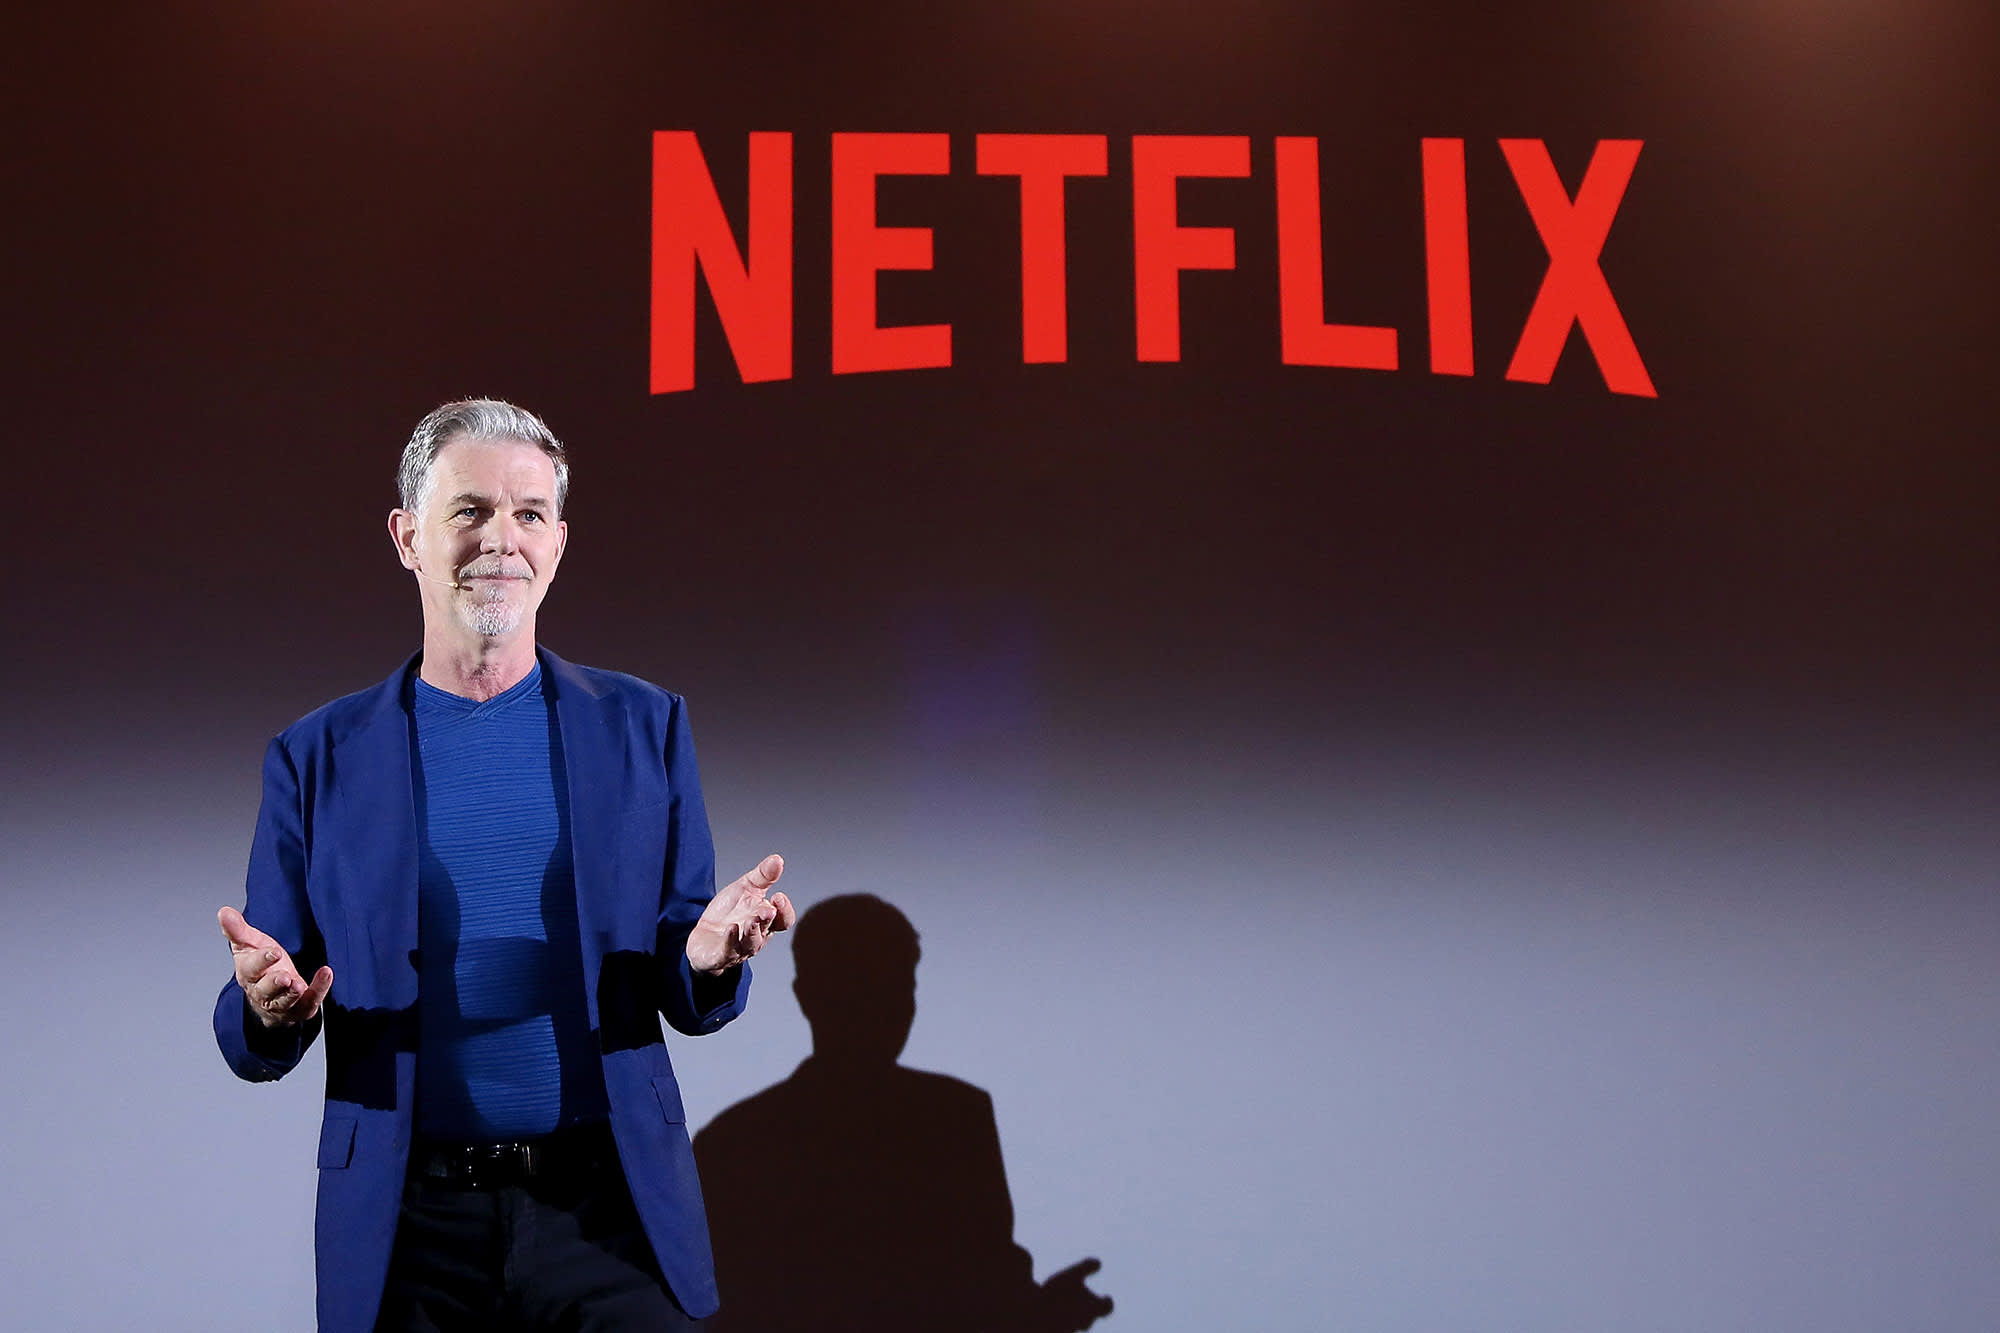 Netflix rises after Bank of America says it's 'seeing significant reacceleration' in mobile app downloads